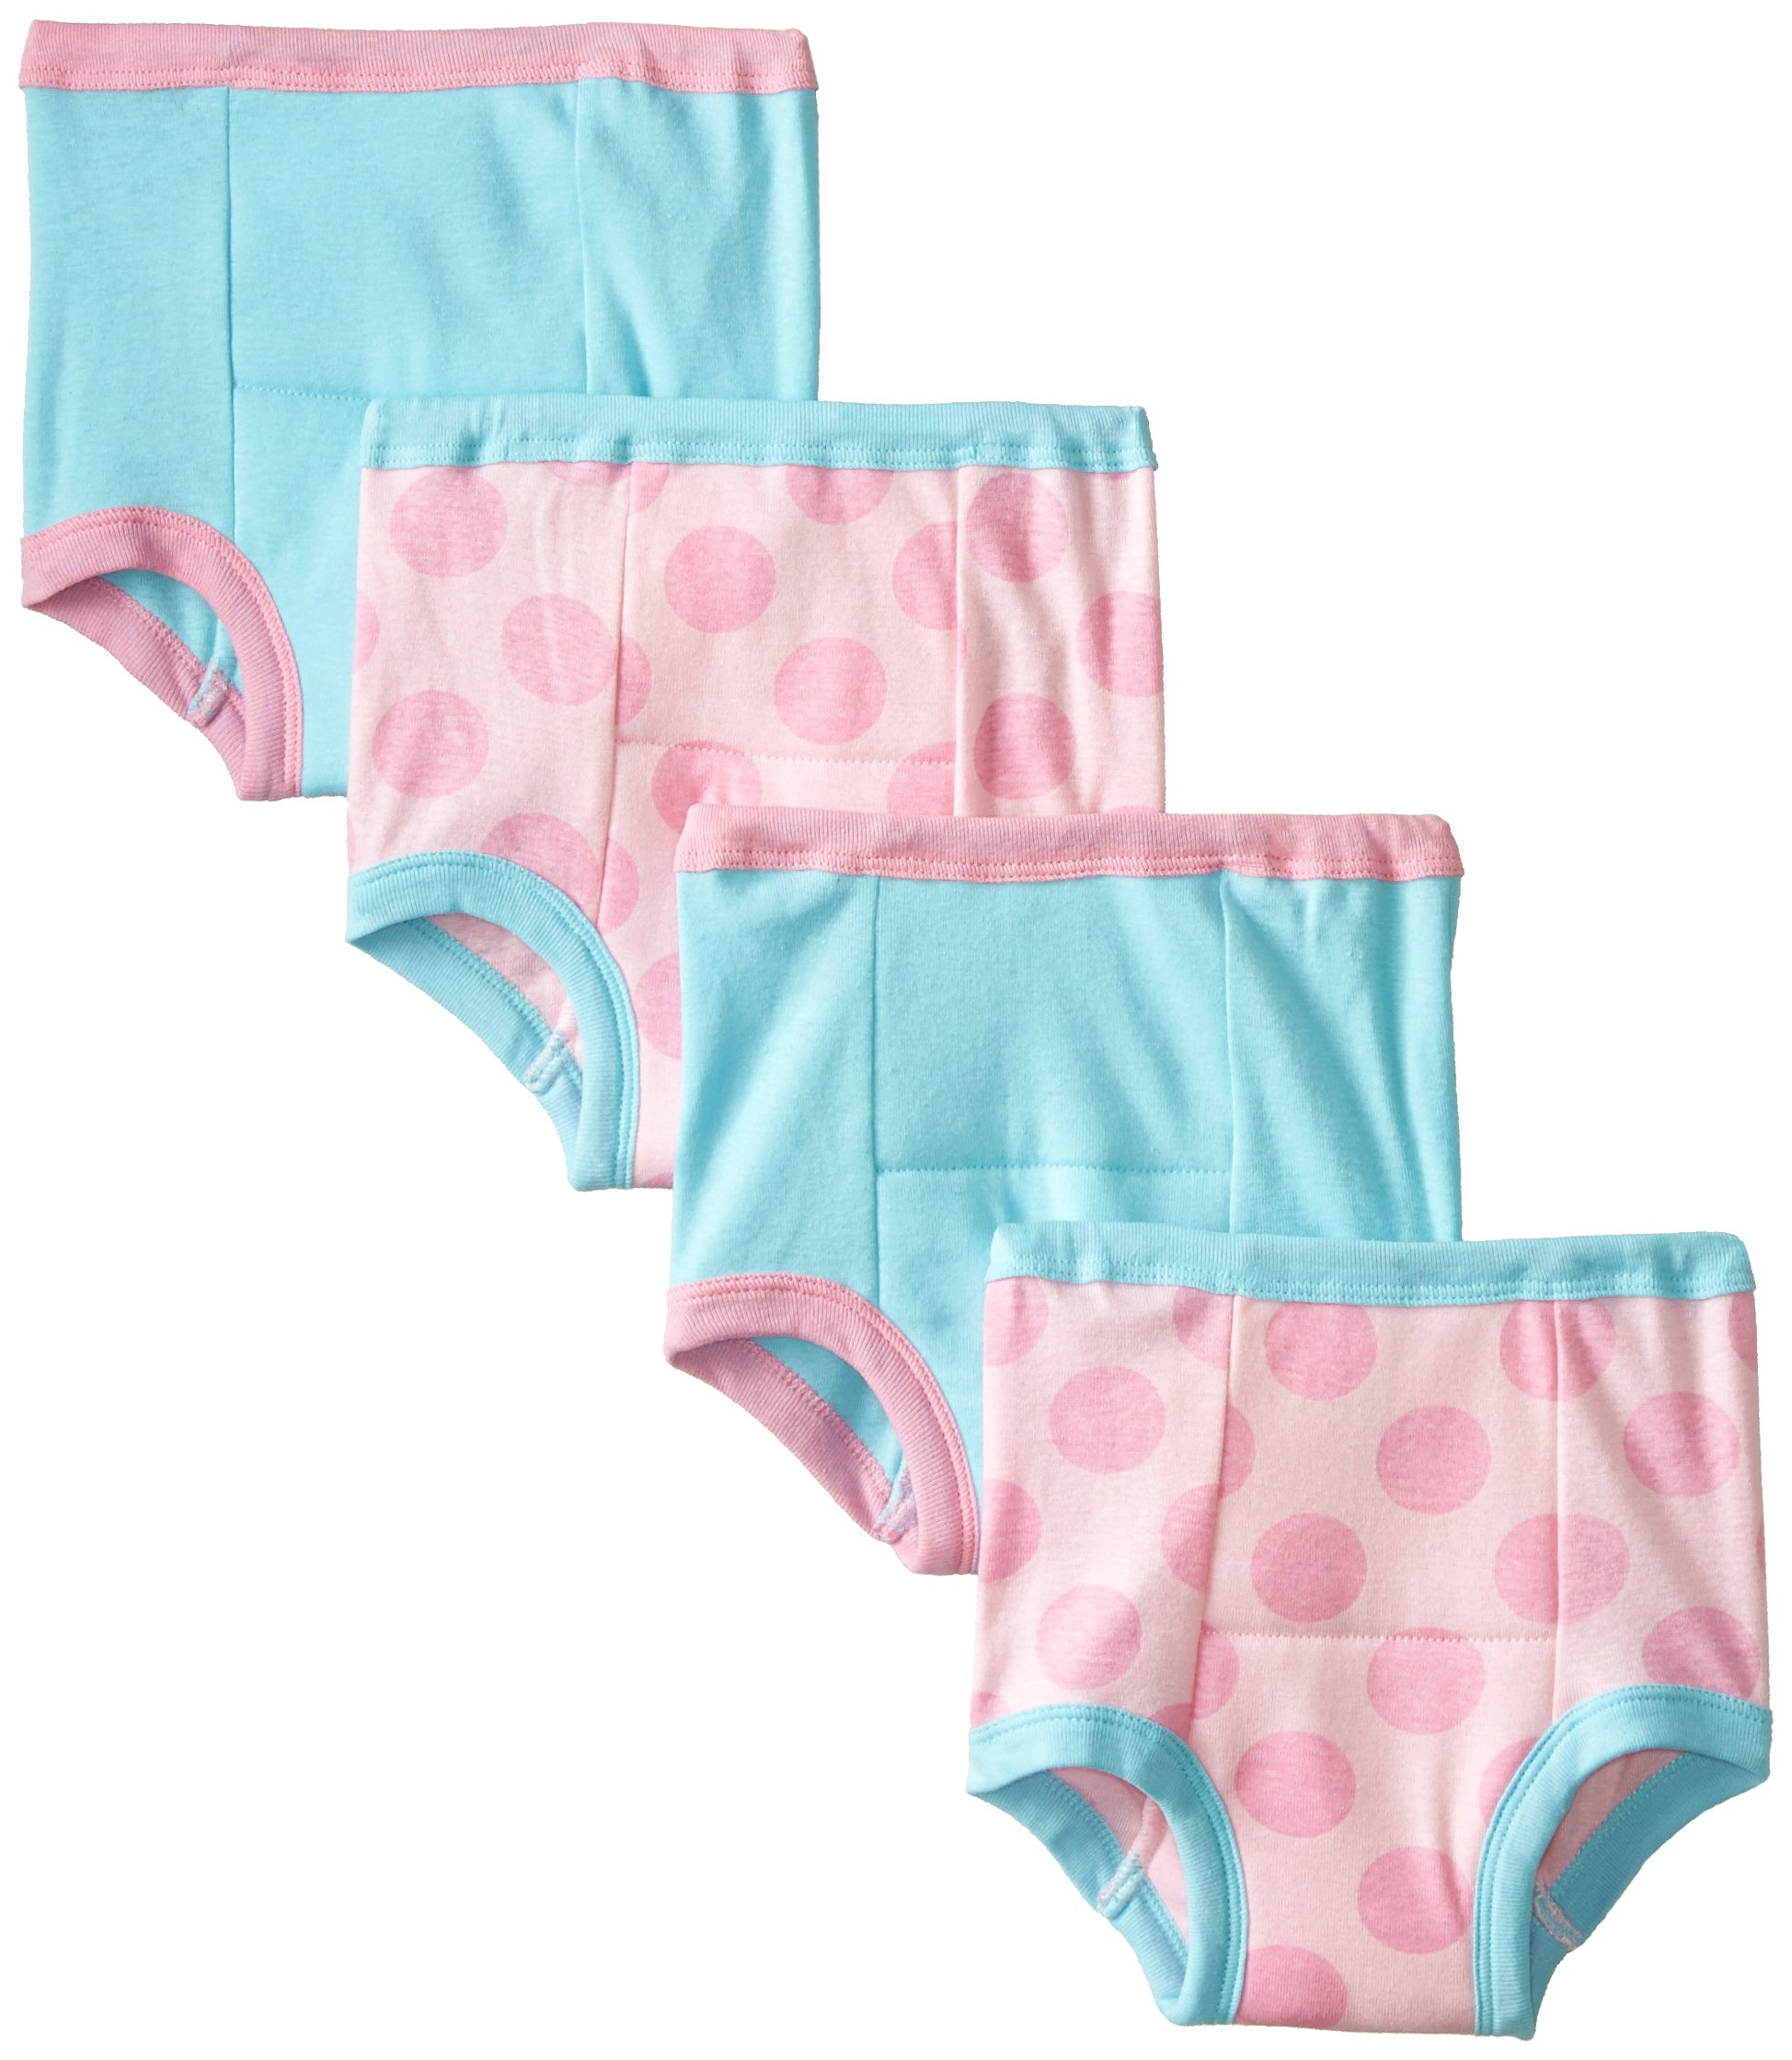 Gerber Toddler Girls' 4 Pack Training Pants, Blue/Pink Dots, 2T